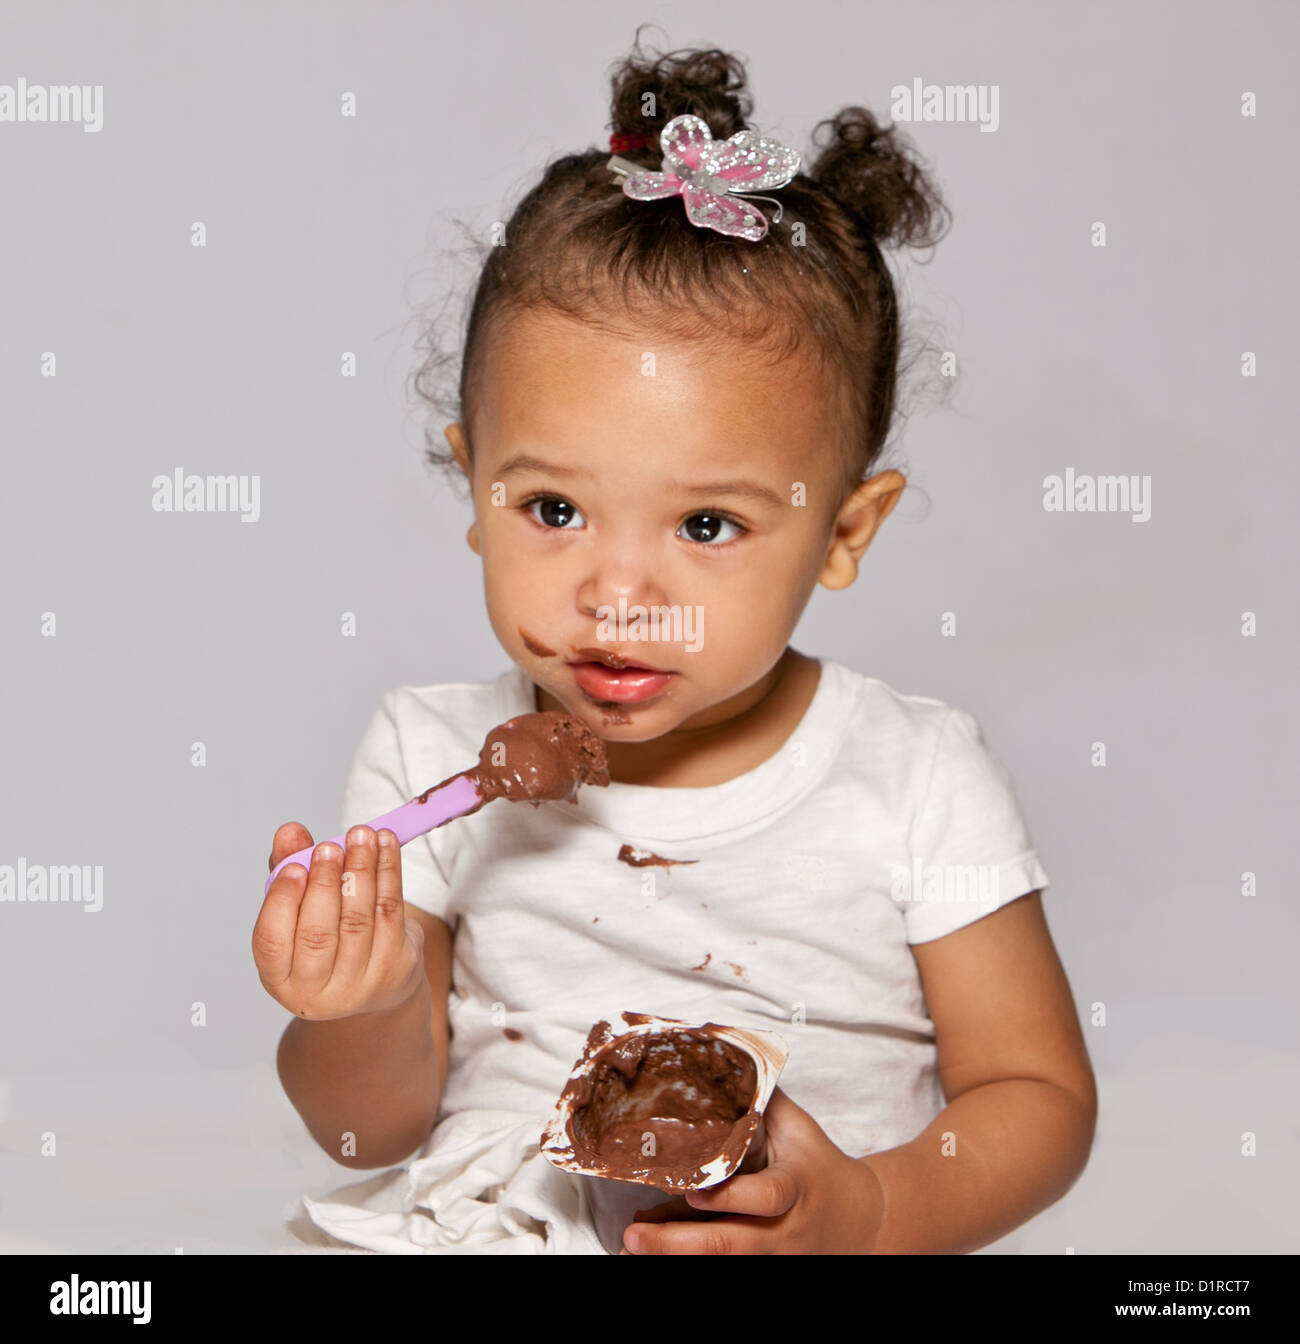 Cute little girl, toddler, making a mess eating a chocolate desert. - Stock Image